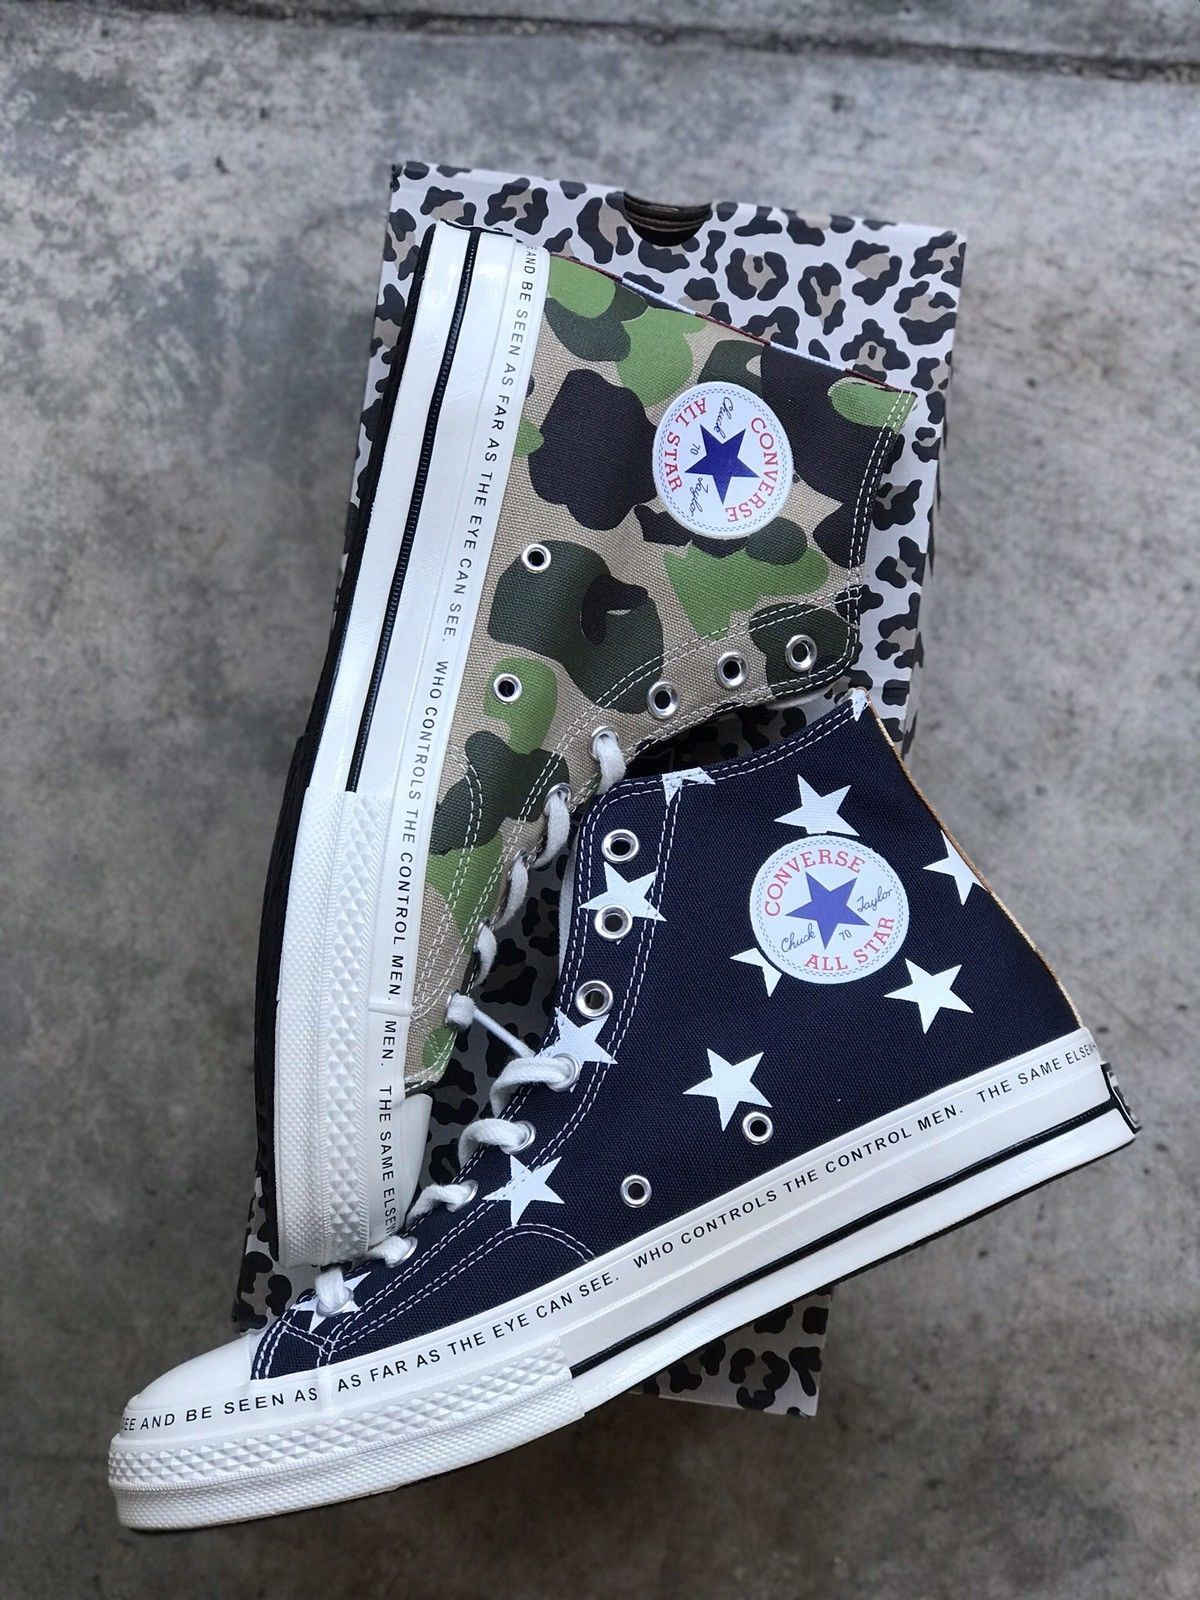 Chuck Taylor All Star 70s Hi New Warriors White